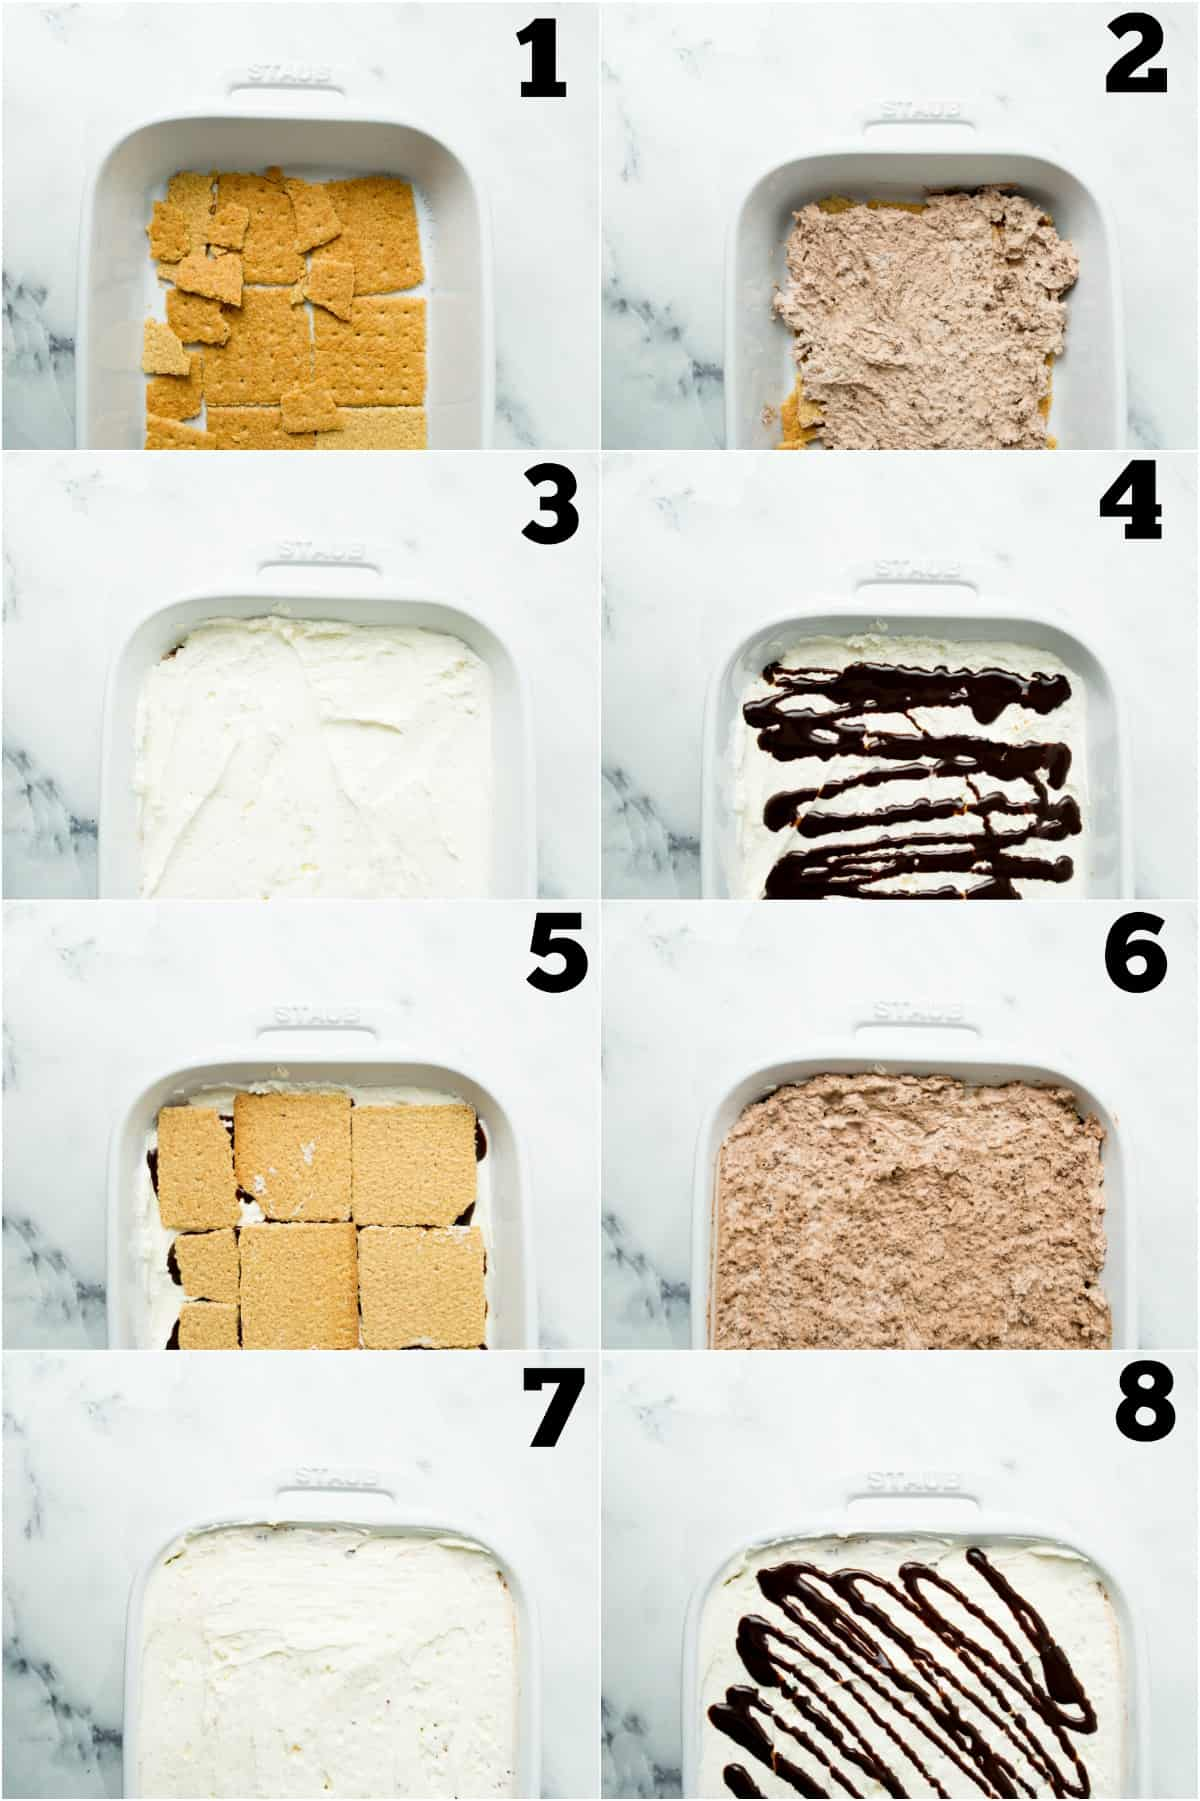 Step by step photos showing how to make smores icebox cake.